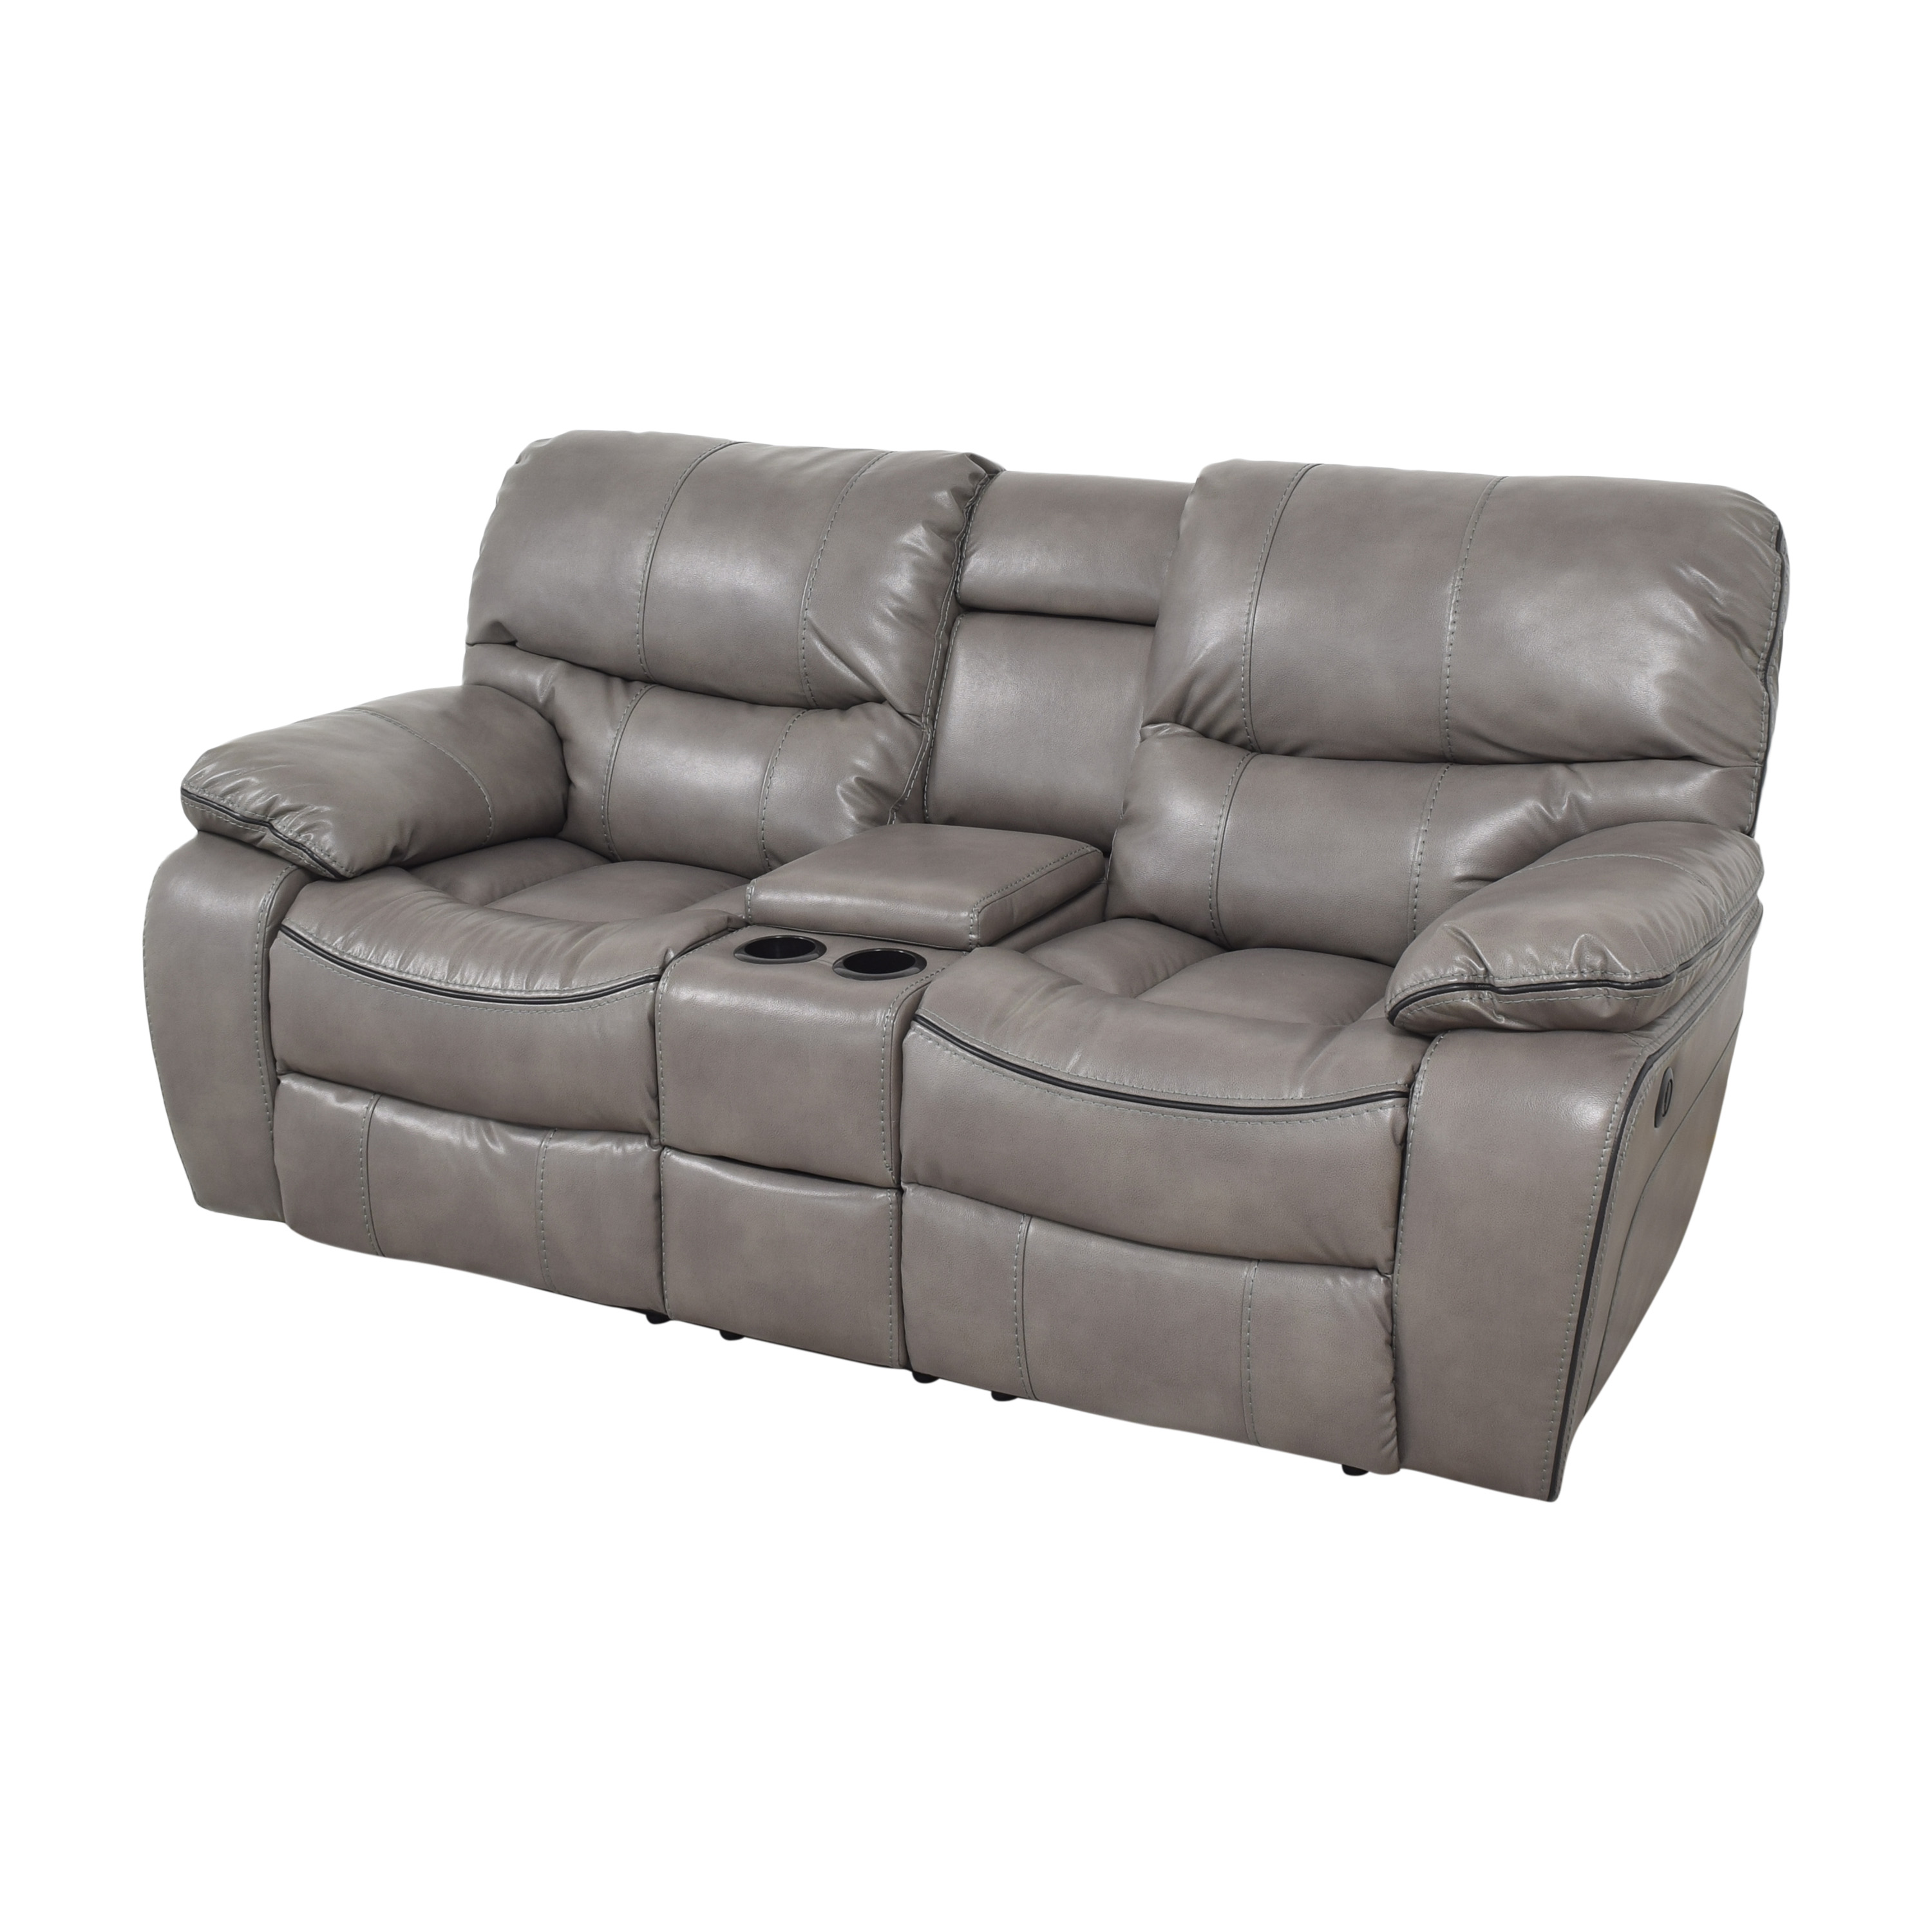 Bob's Discount Furniture Bob's Avenger Power Reclining Console Loveseat ma